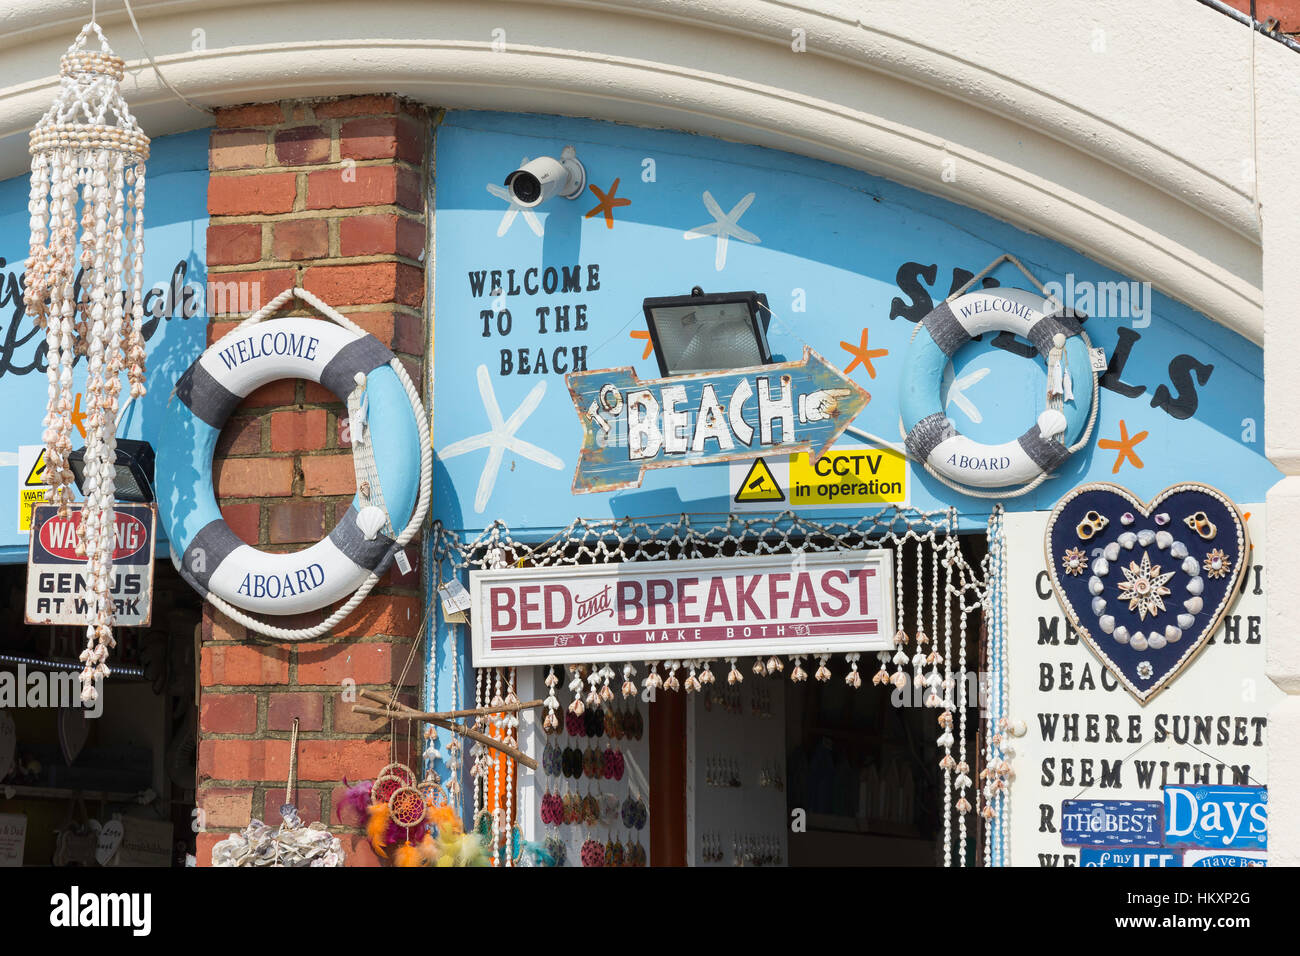 Entrance to souvenir shell shop, Kings Road Arches, Brighton, East Sussex, England, United Kingdom Stock Photo